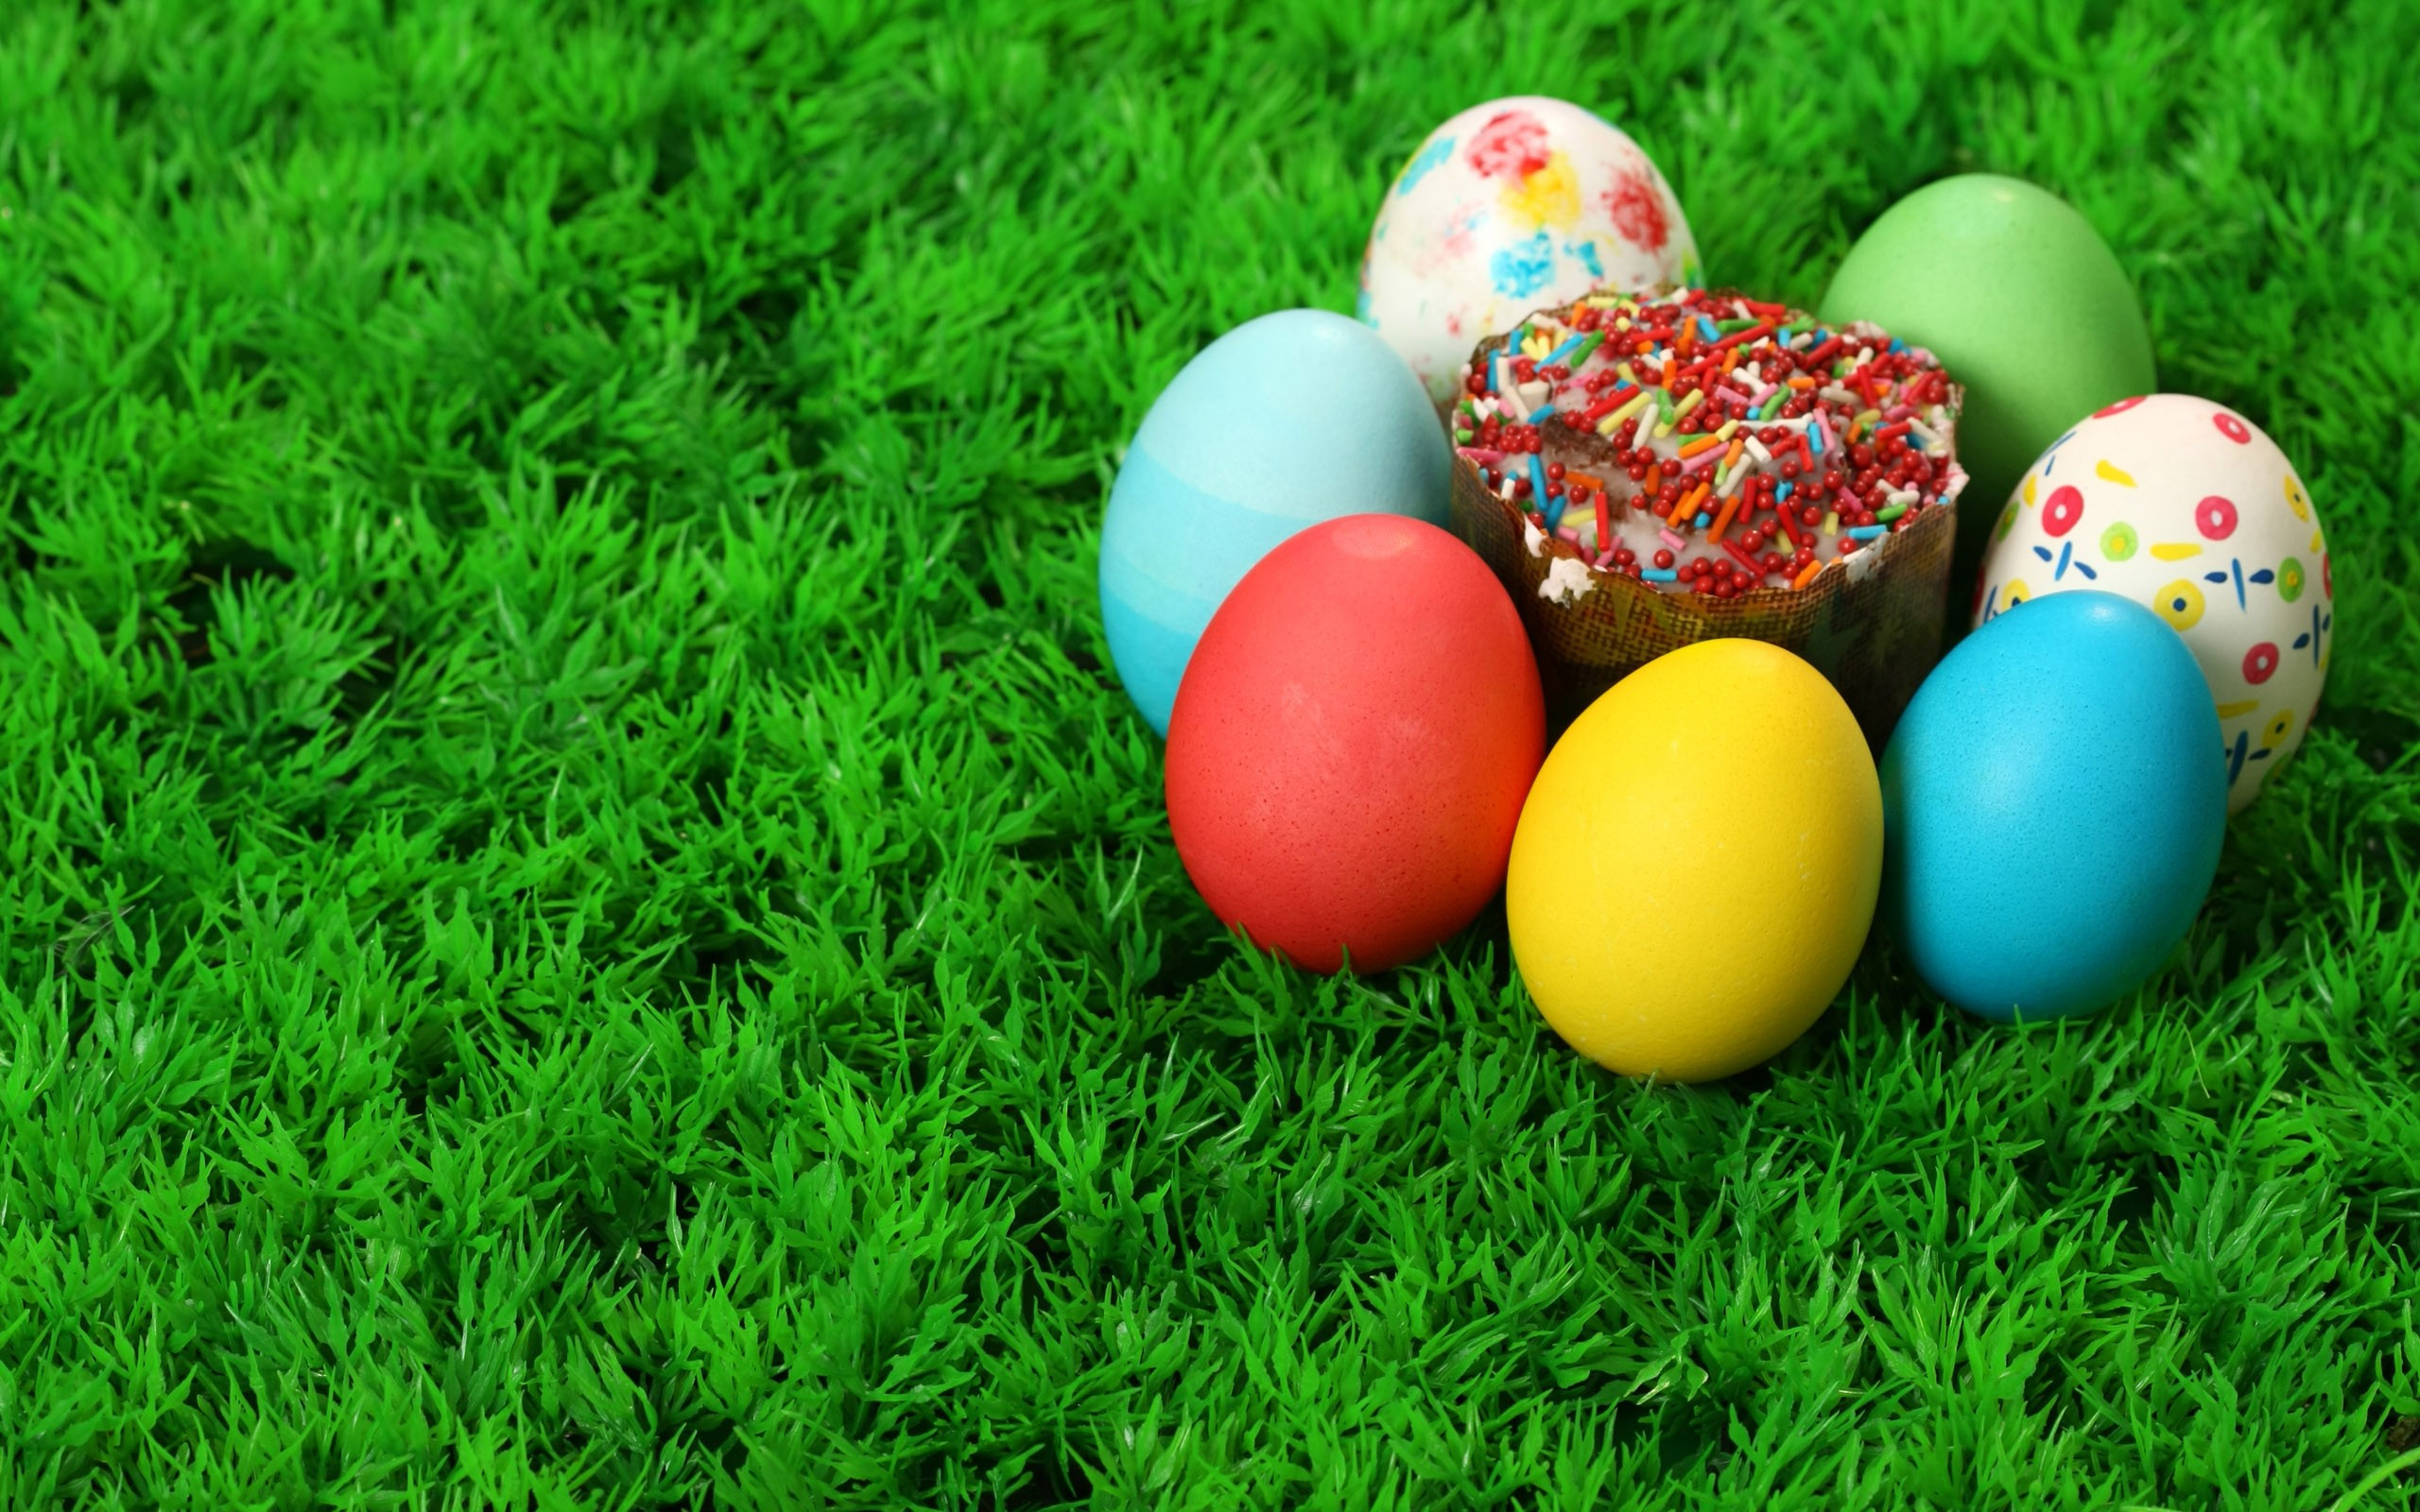 Download the Easter Egg Cupcake Wallpaper Easter Egg 2560x1600